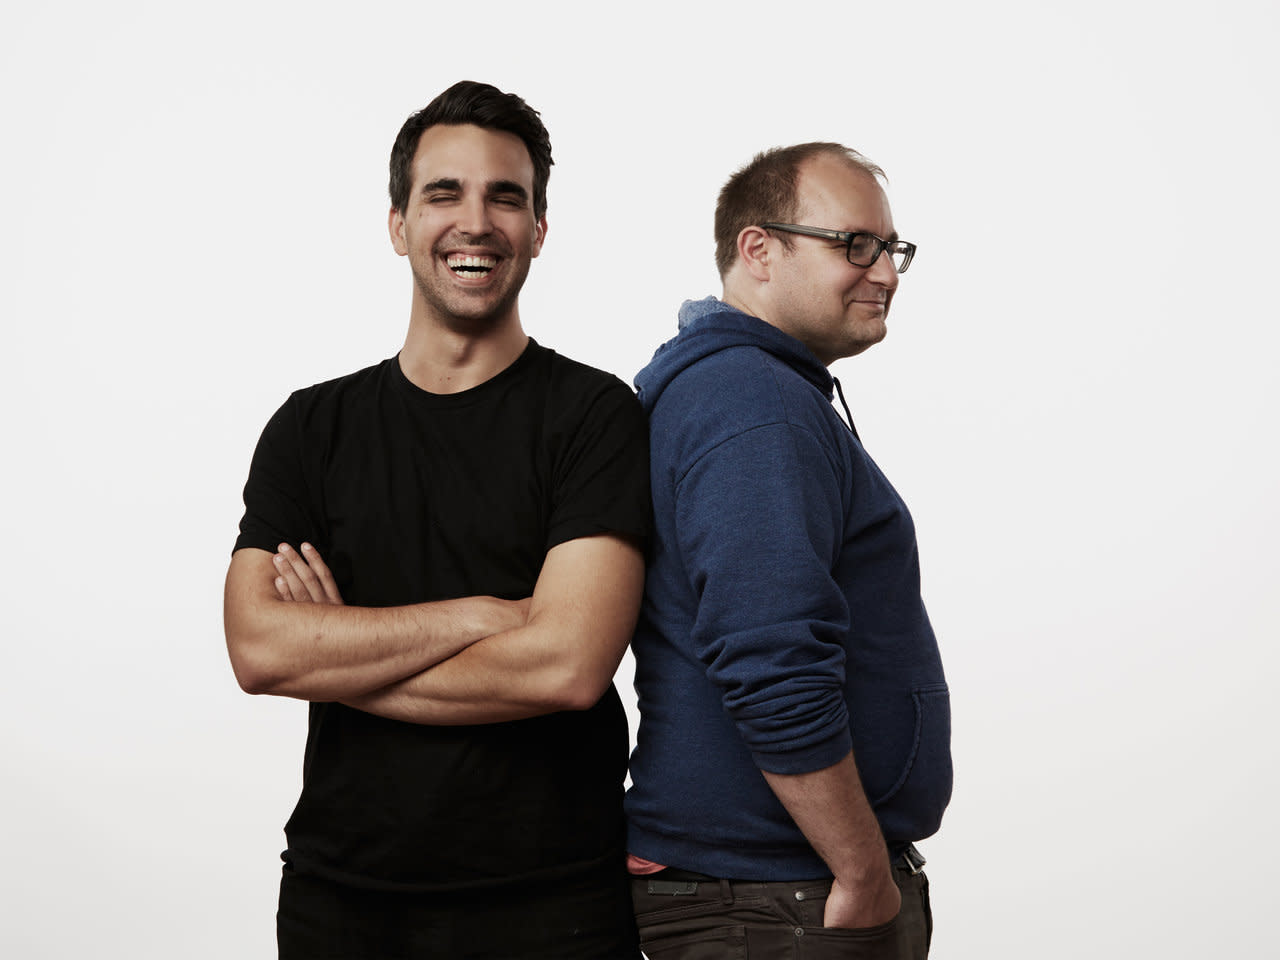 PJ Vogt and Alex Goldman of Reply All, Photo Courtesy of Spotify /  Daniel Seung Lee